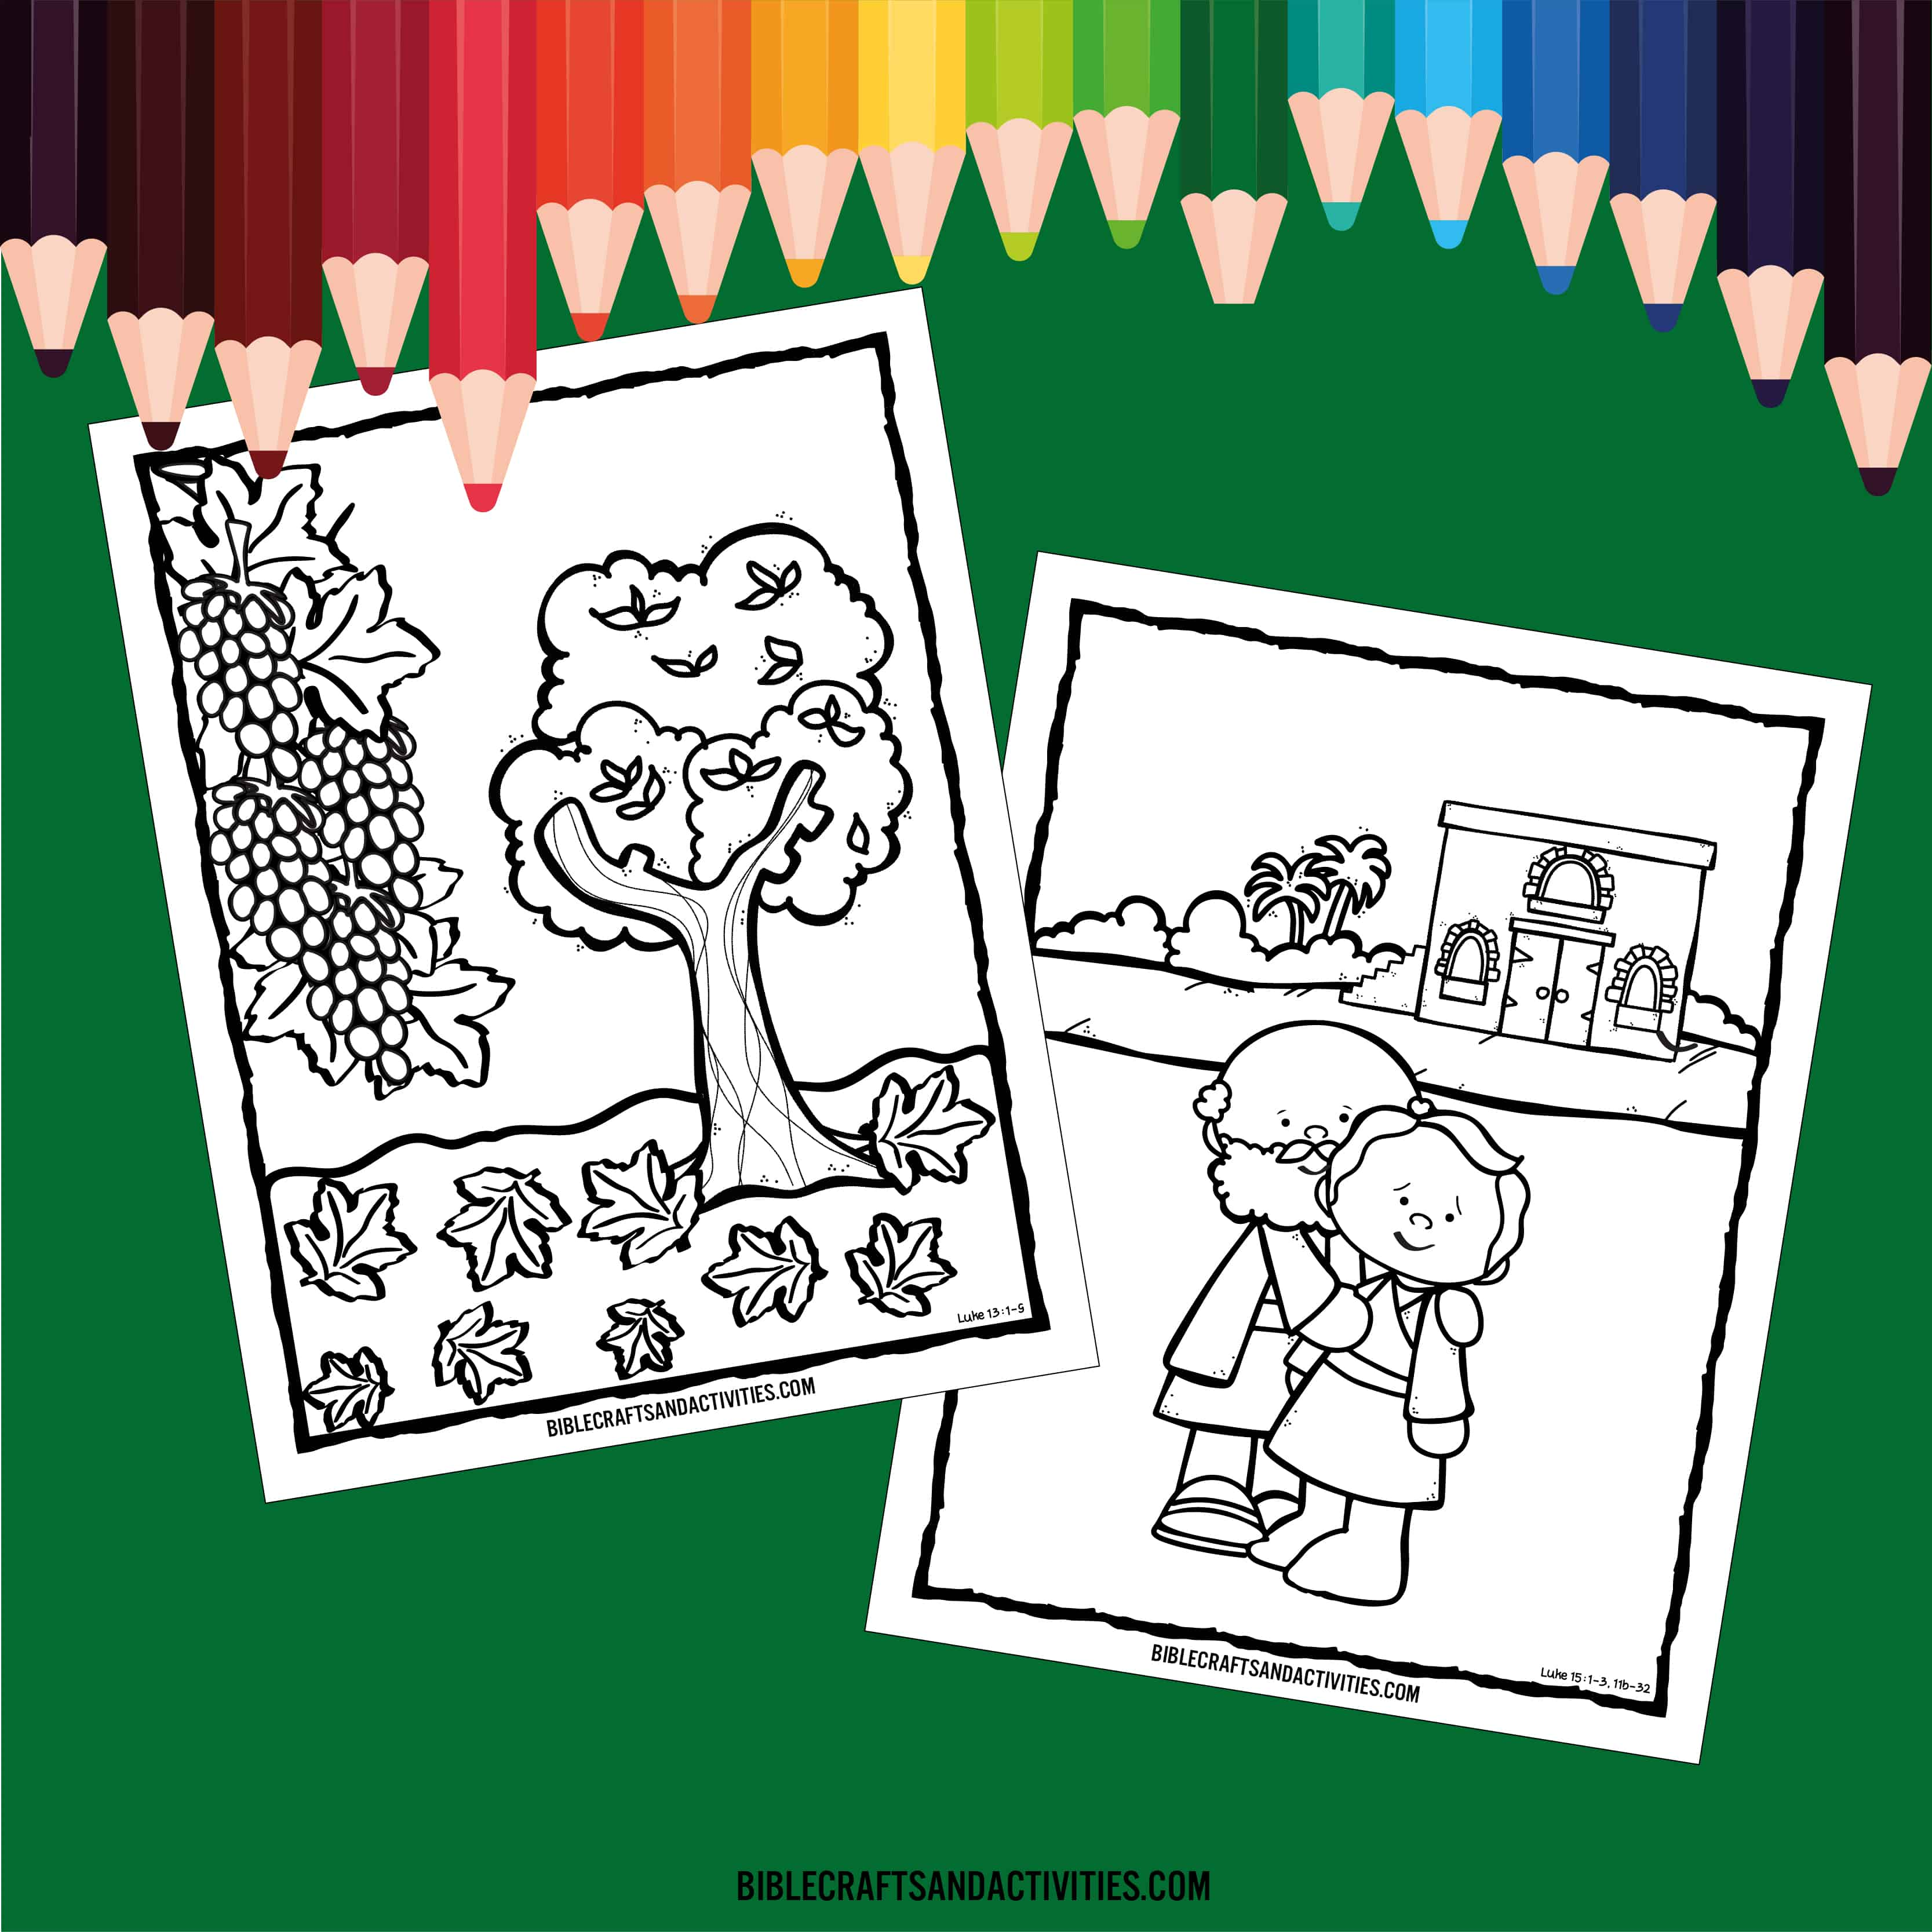 Free Lent Coloring Pages - Bible Crafts and Activities